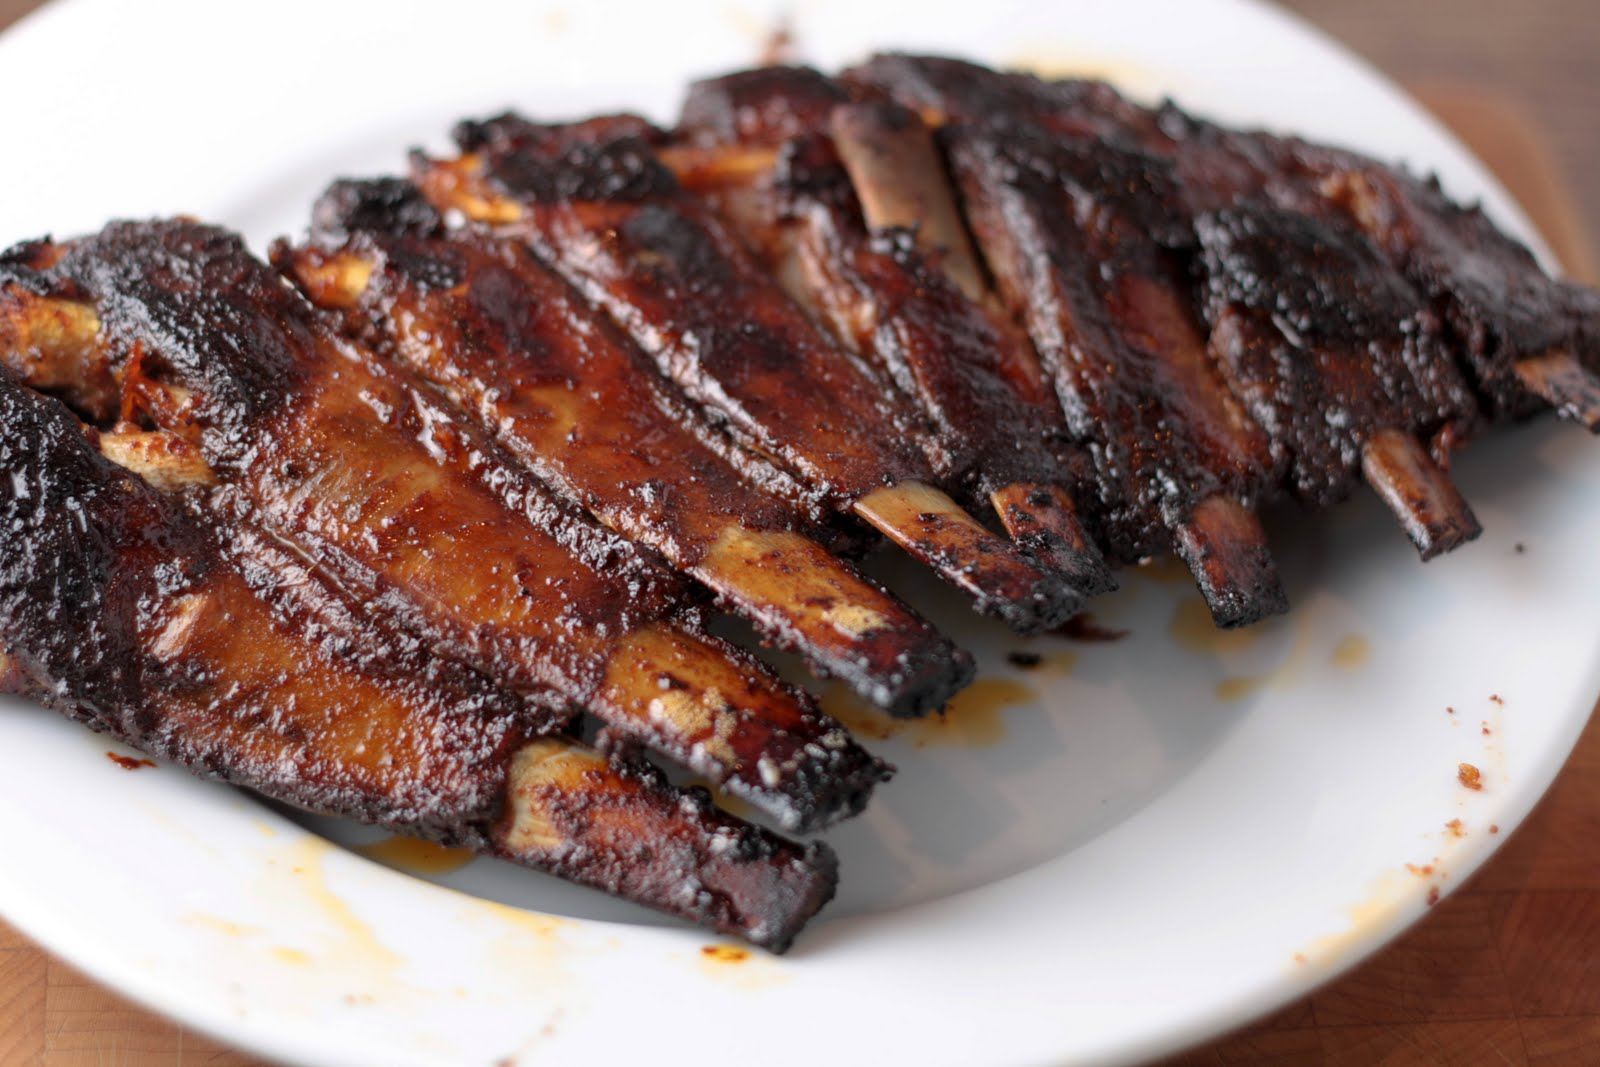 Slow cooked bbq lamb ribs robyn verrall recipe bullys beef - Make lamb barbecue ...